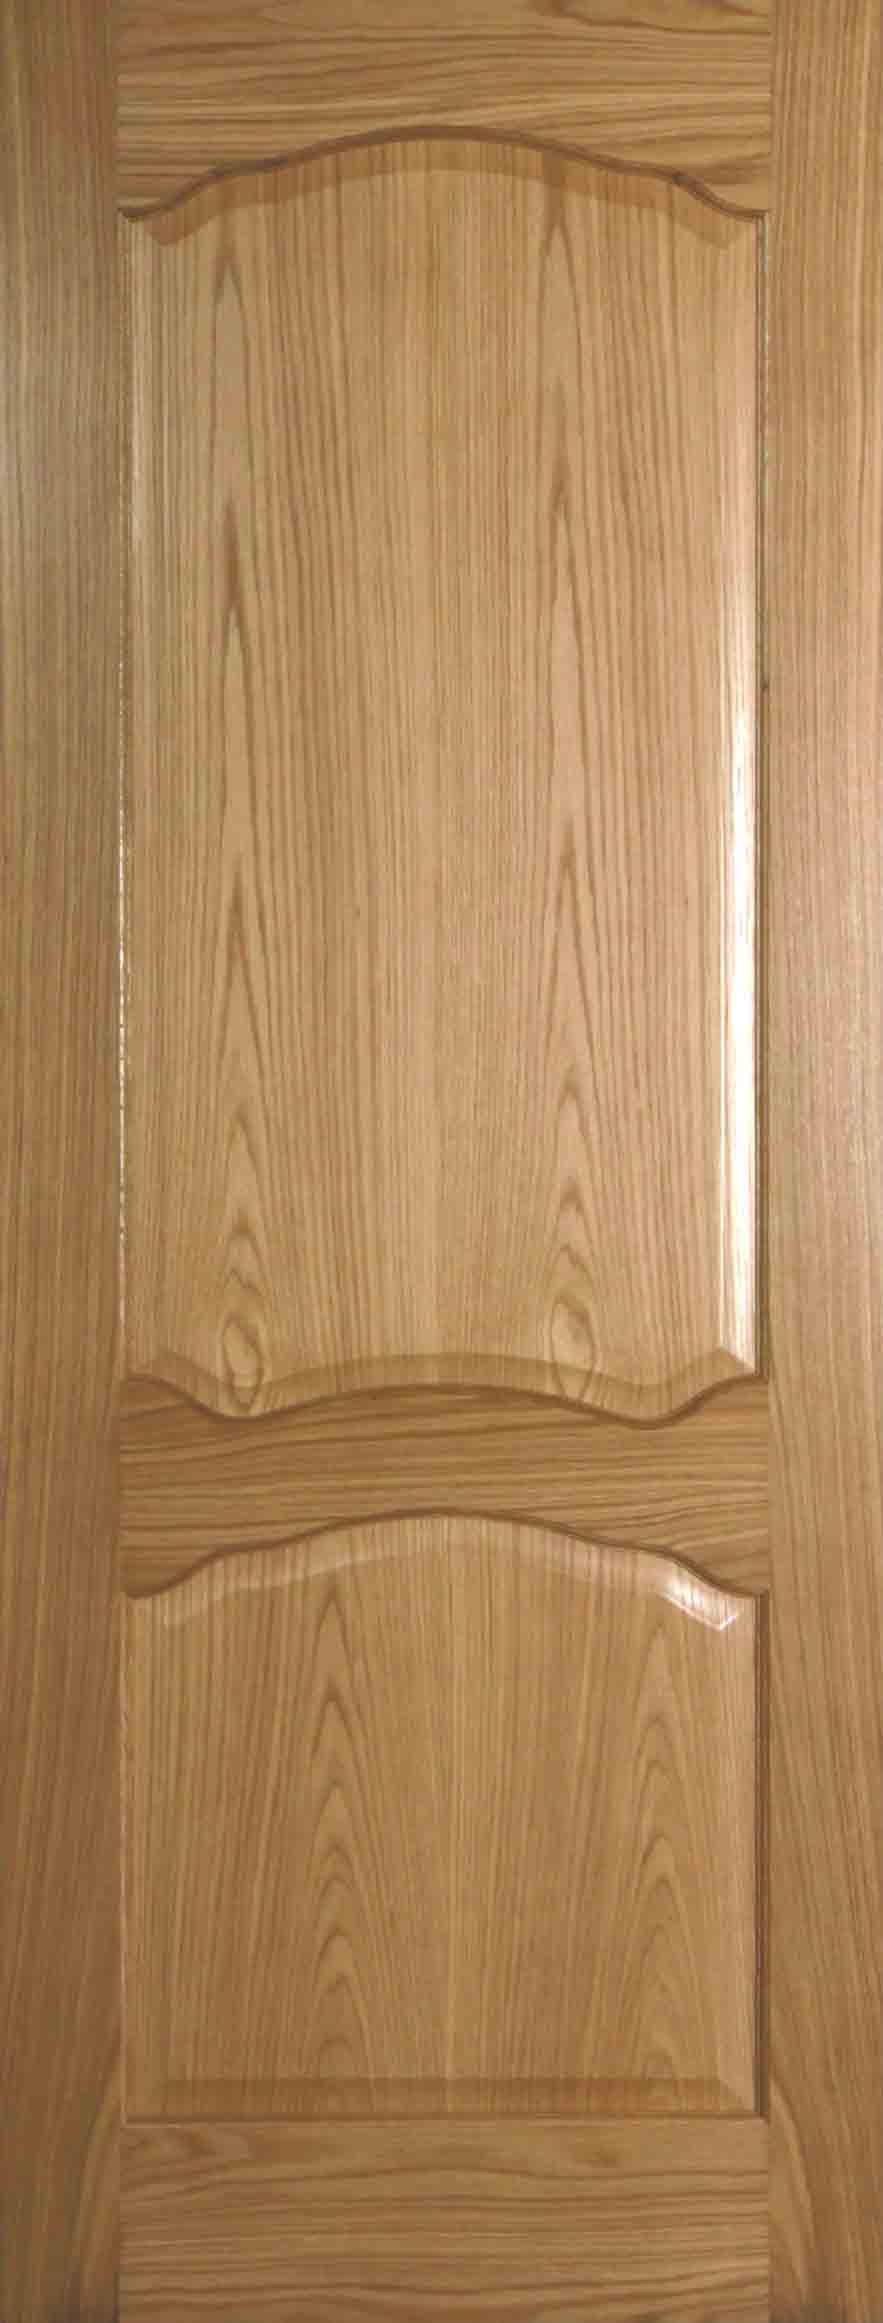 Internal Oak Louis Door Prefinished